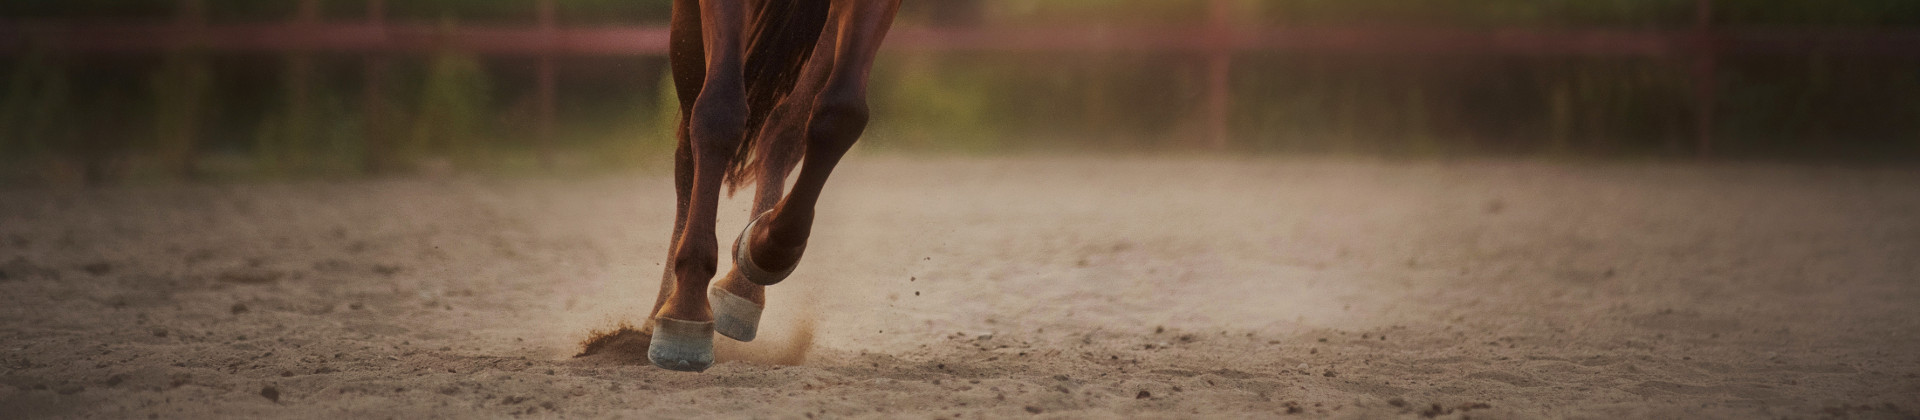 Operation of an equestrian centre: Management-consultation